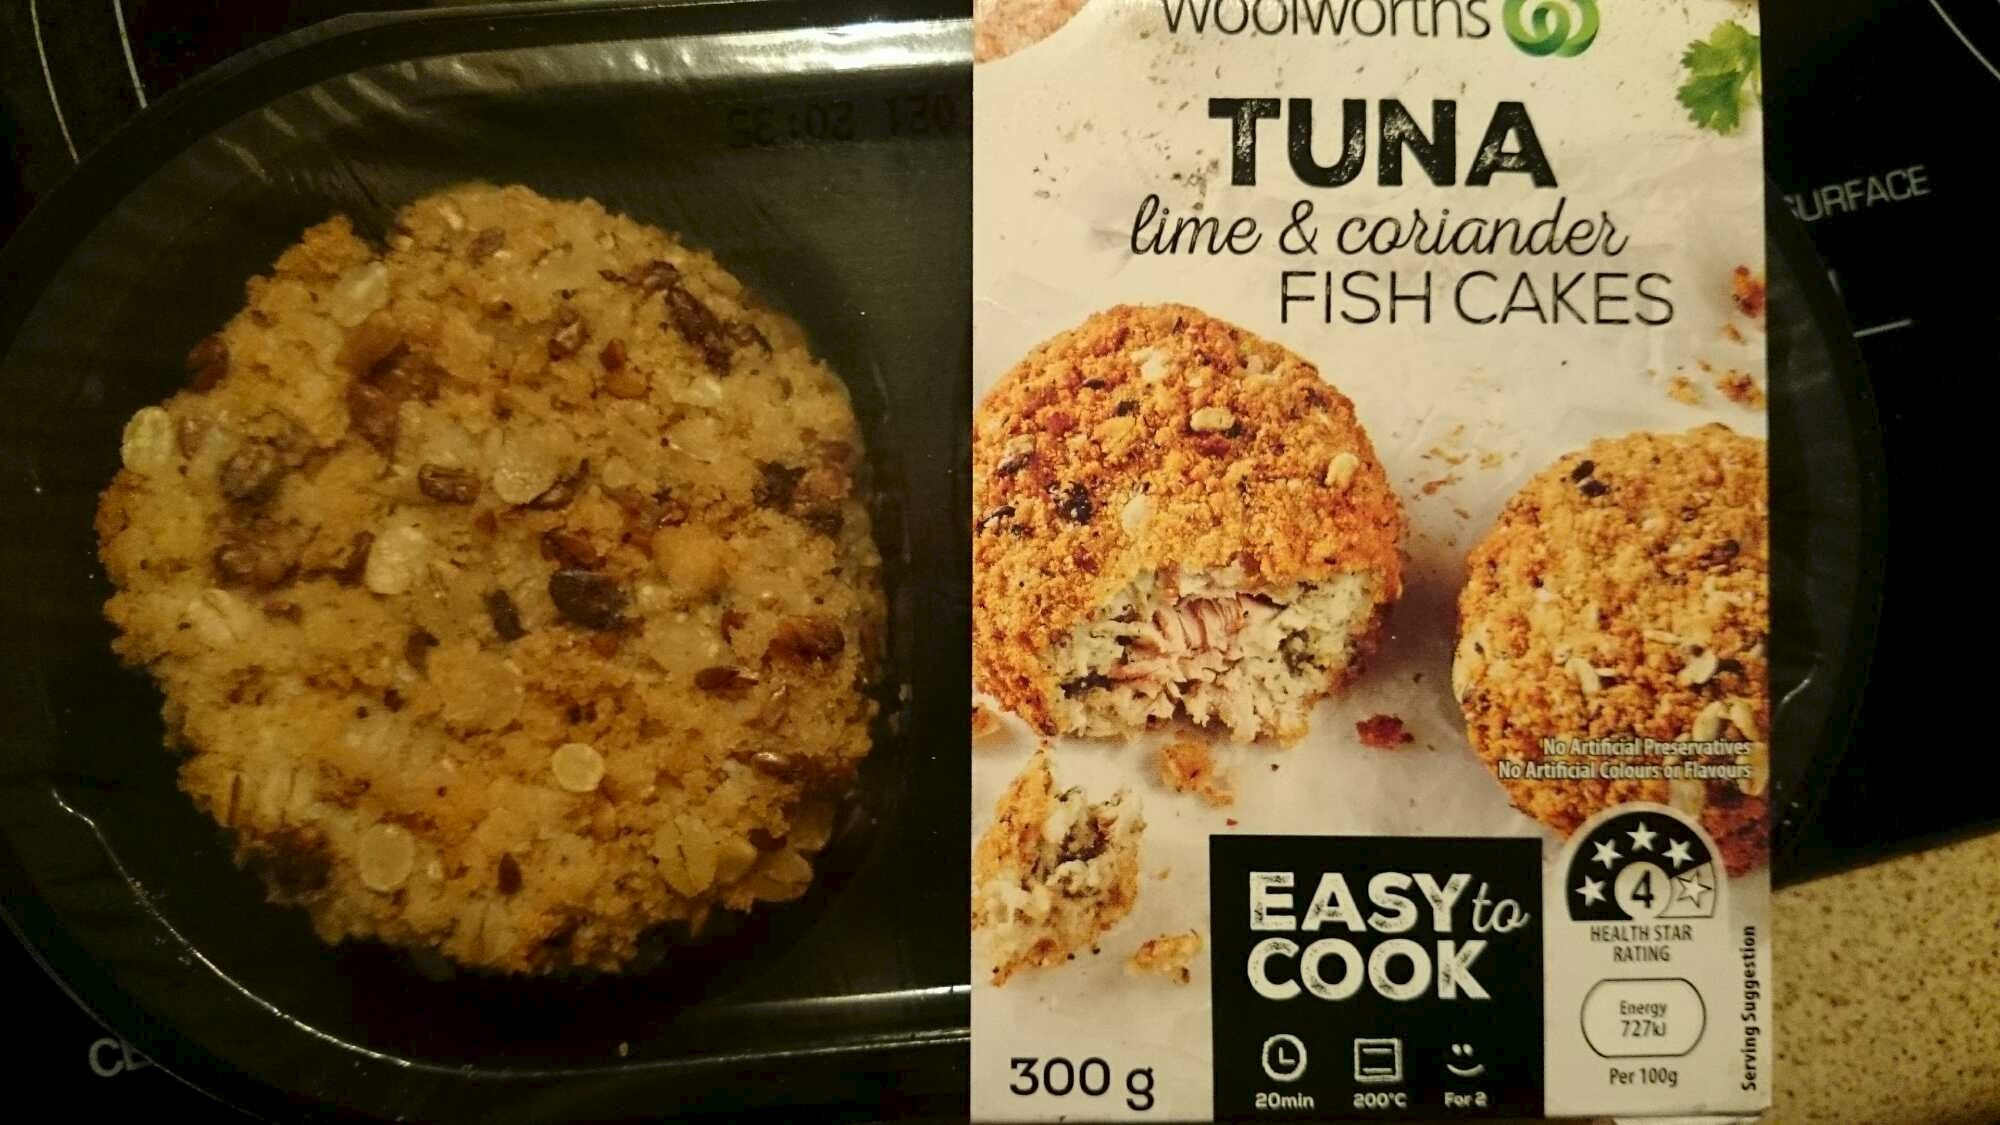 Tuna lime and coriander Fish Cakes - Product - en